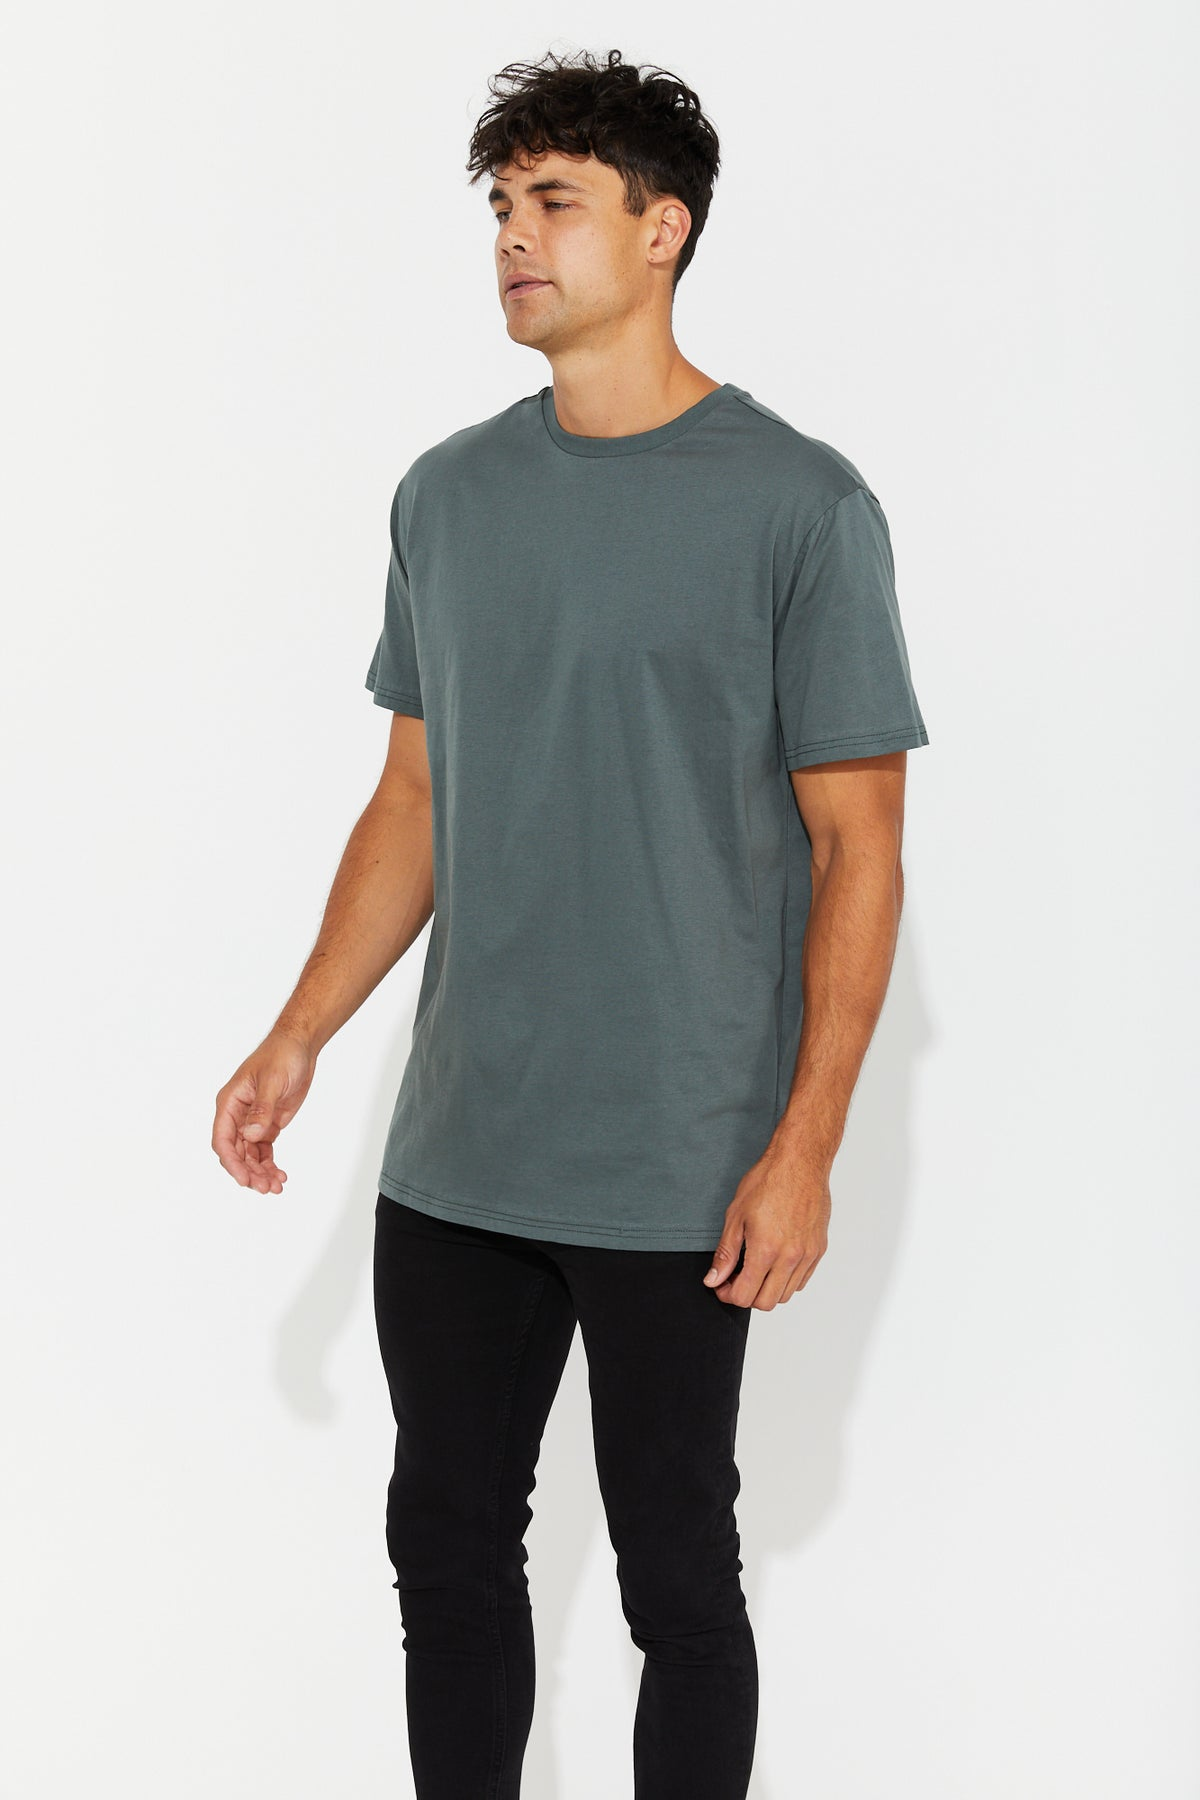 Nth Soft Wash Tee Emerald